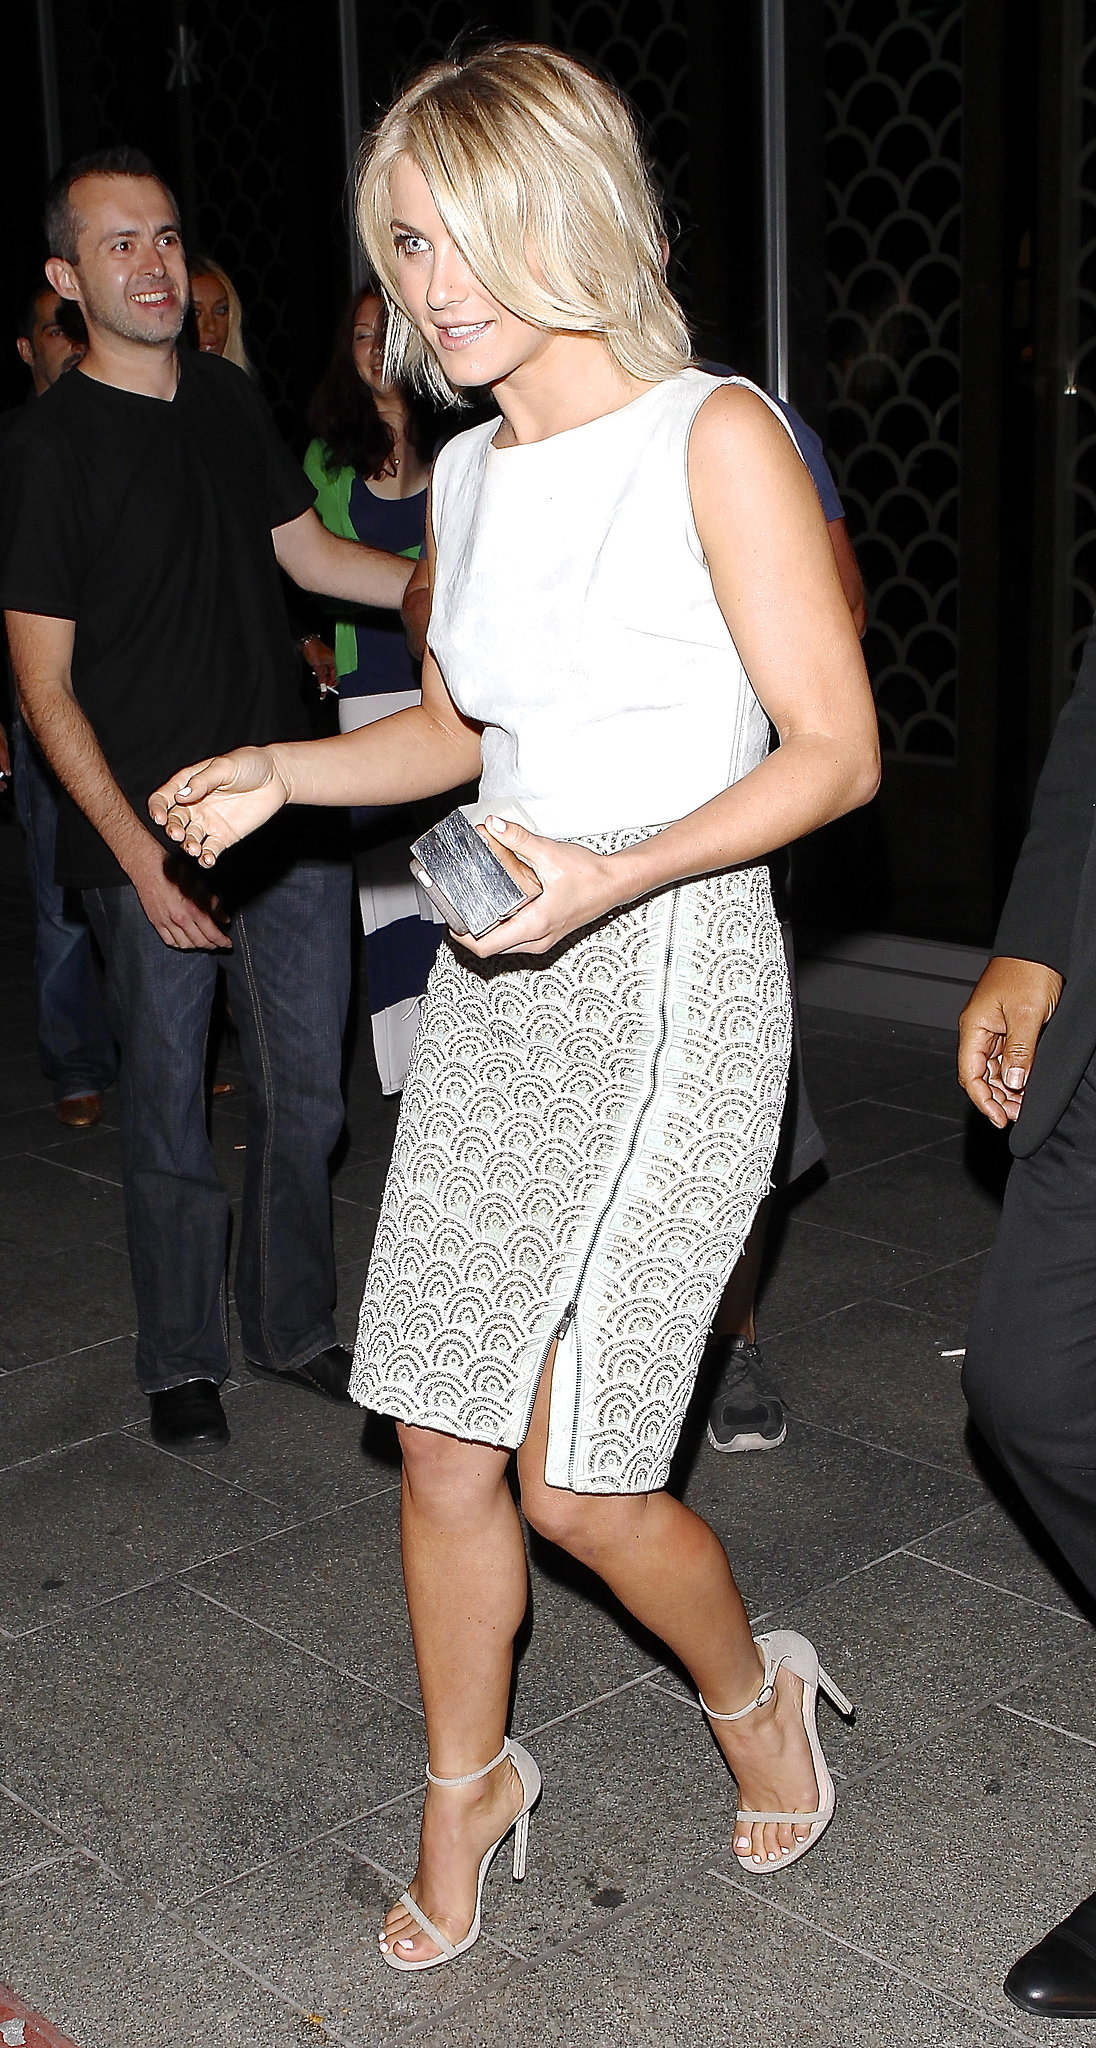 During a night out in LA, Julianne Hough paired a Houghton top with a Catherine Malandrino skirt and matching ankle-strap sandals. The result was nothing short of chic.